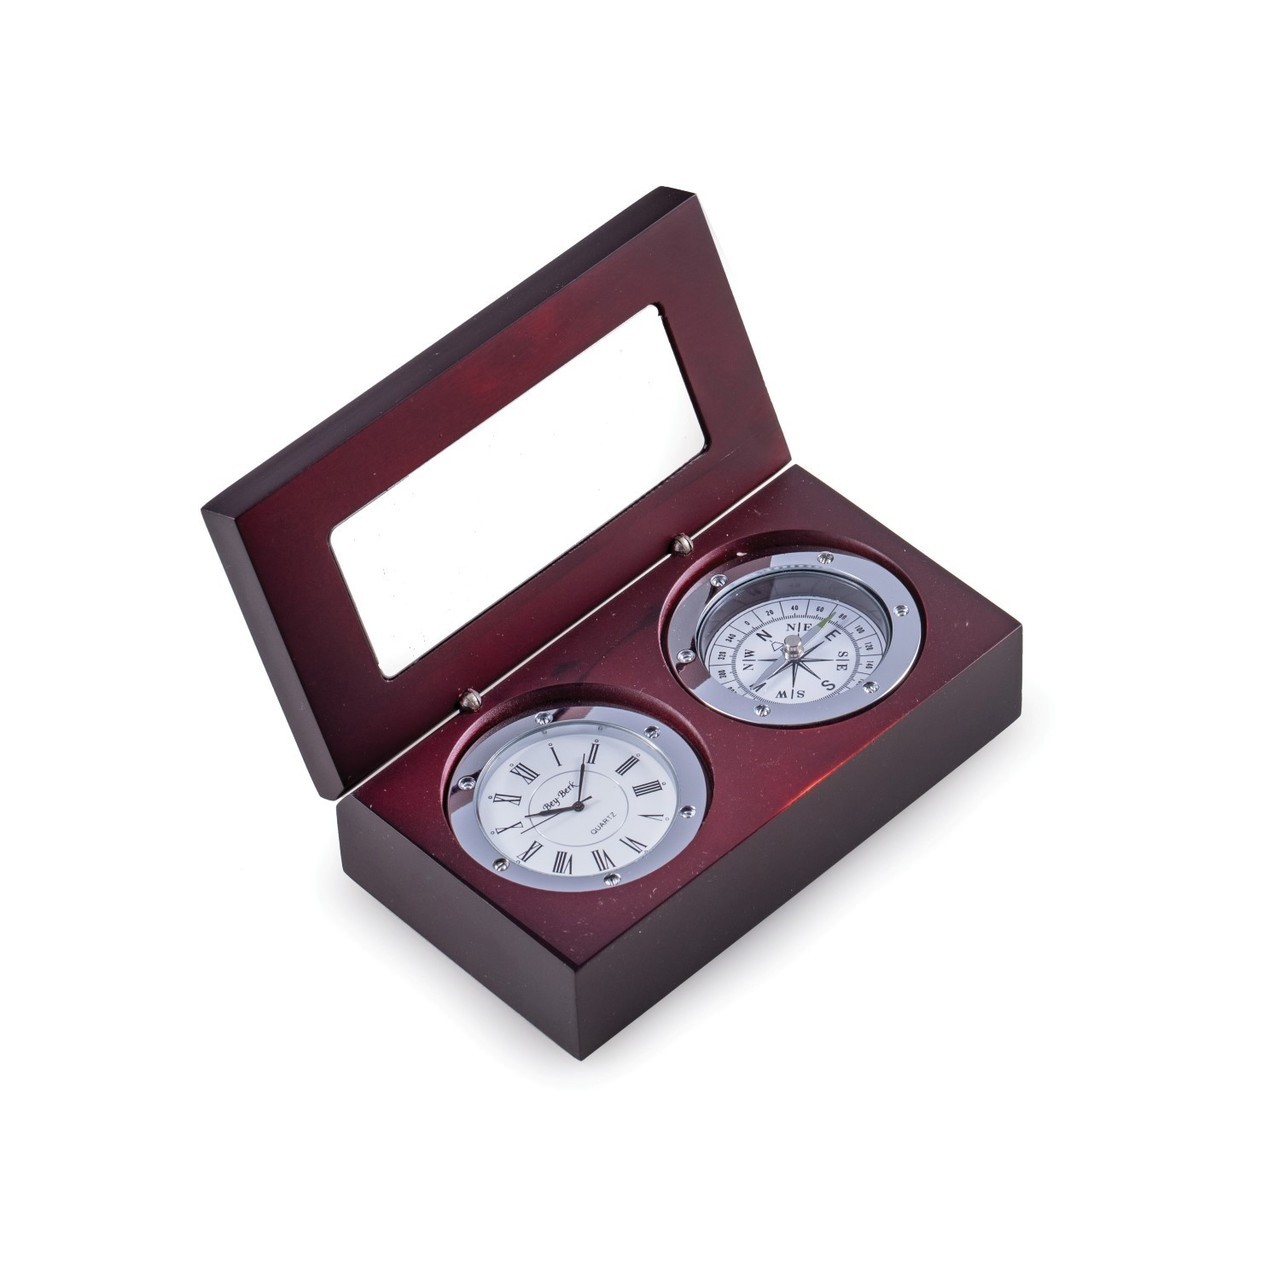 Clock & Compass in Wooden Box